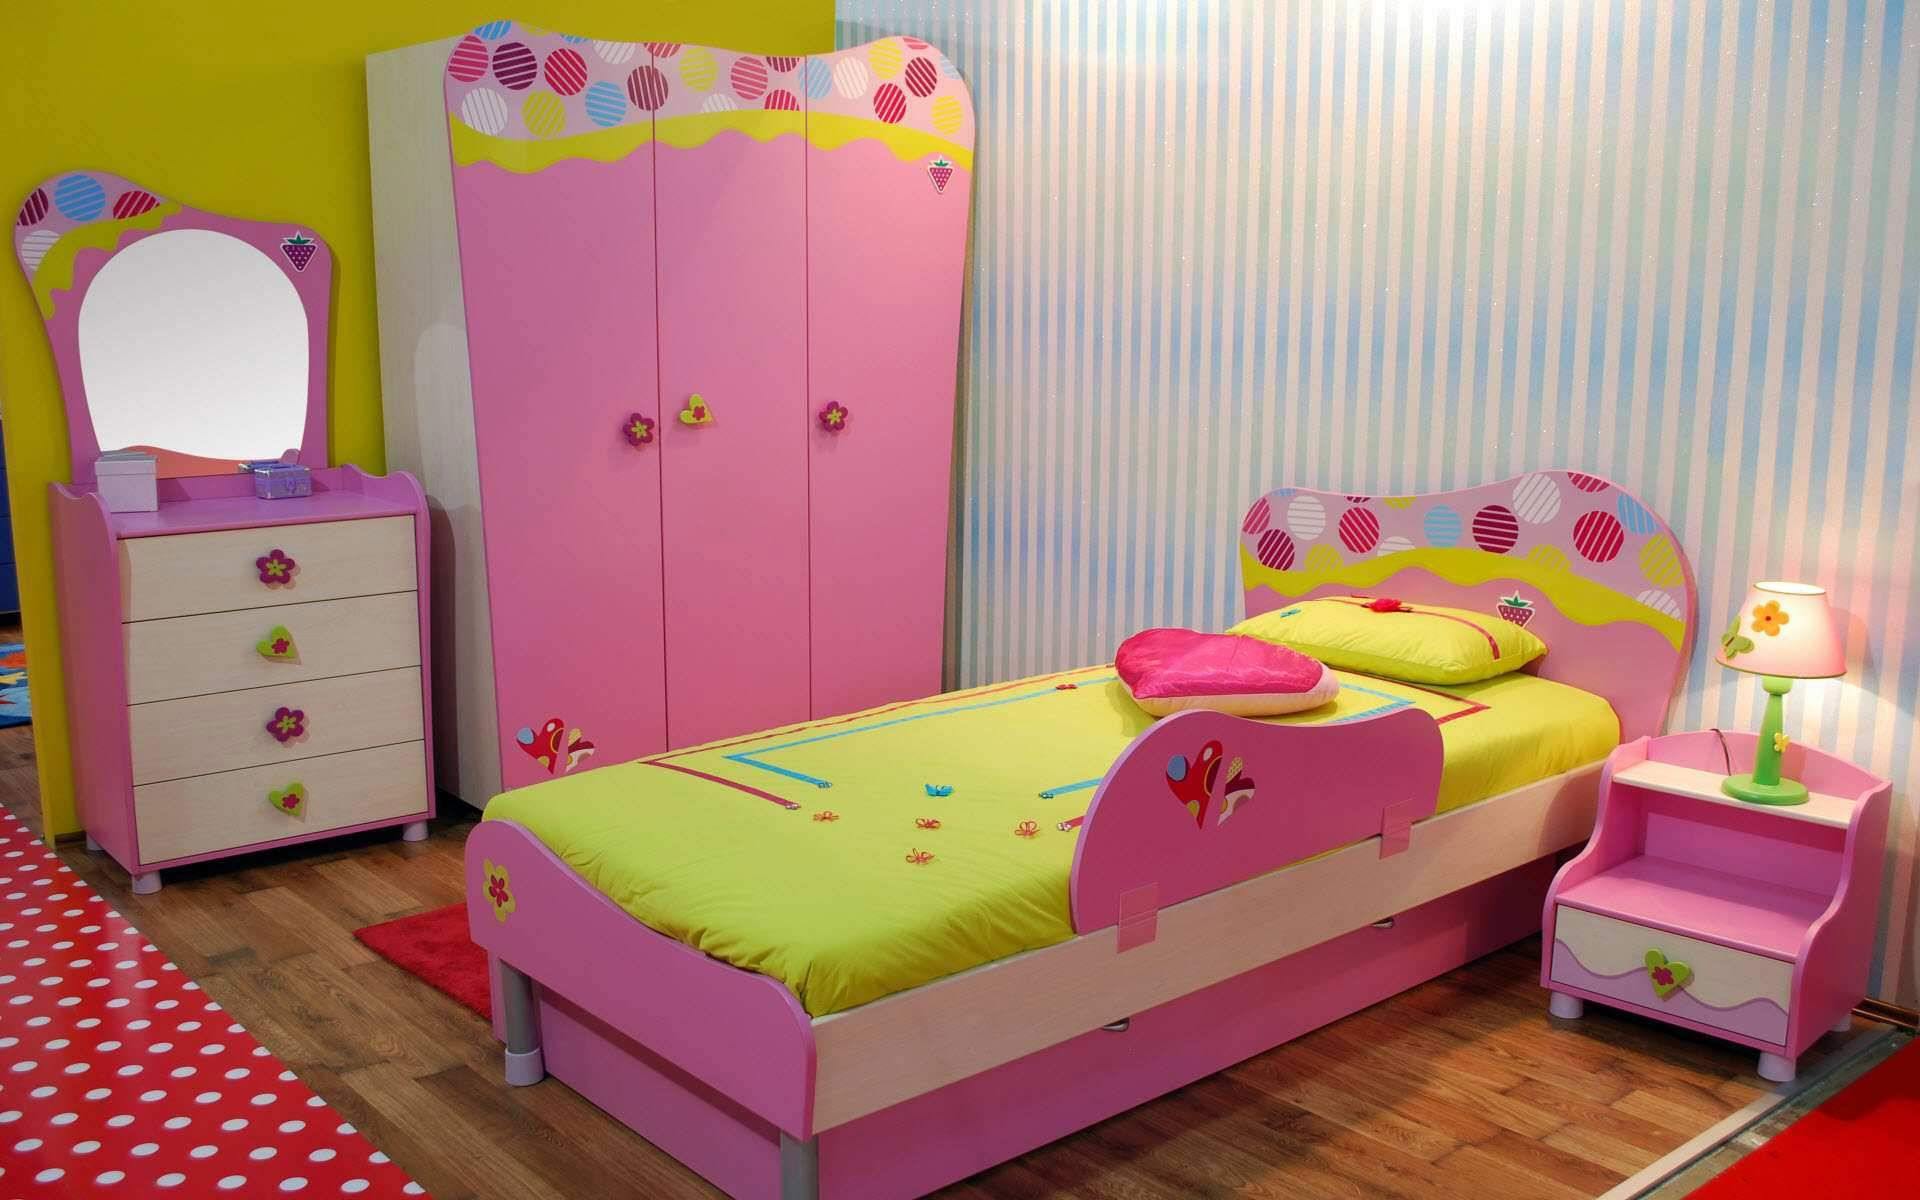 Kids Bedroom Design for girls | Stuff for Kids | Pinterest ...